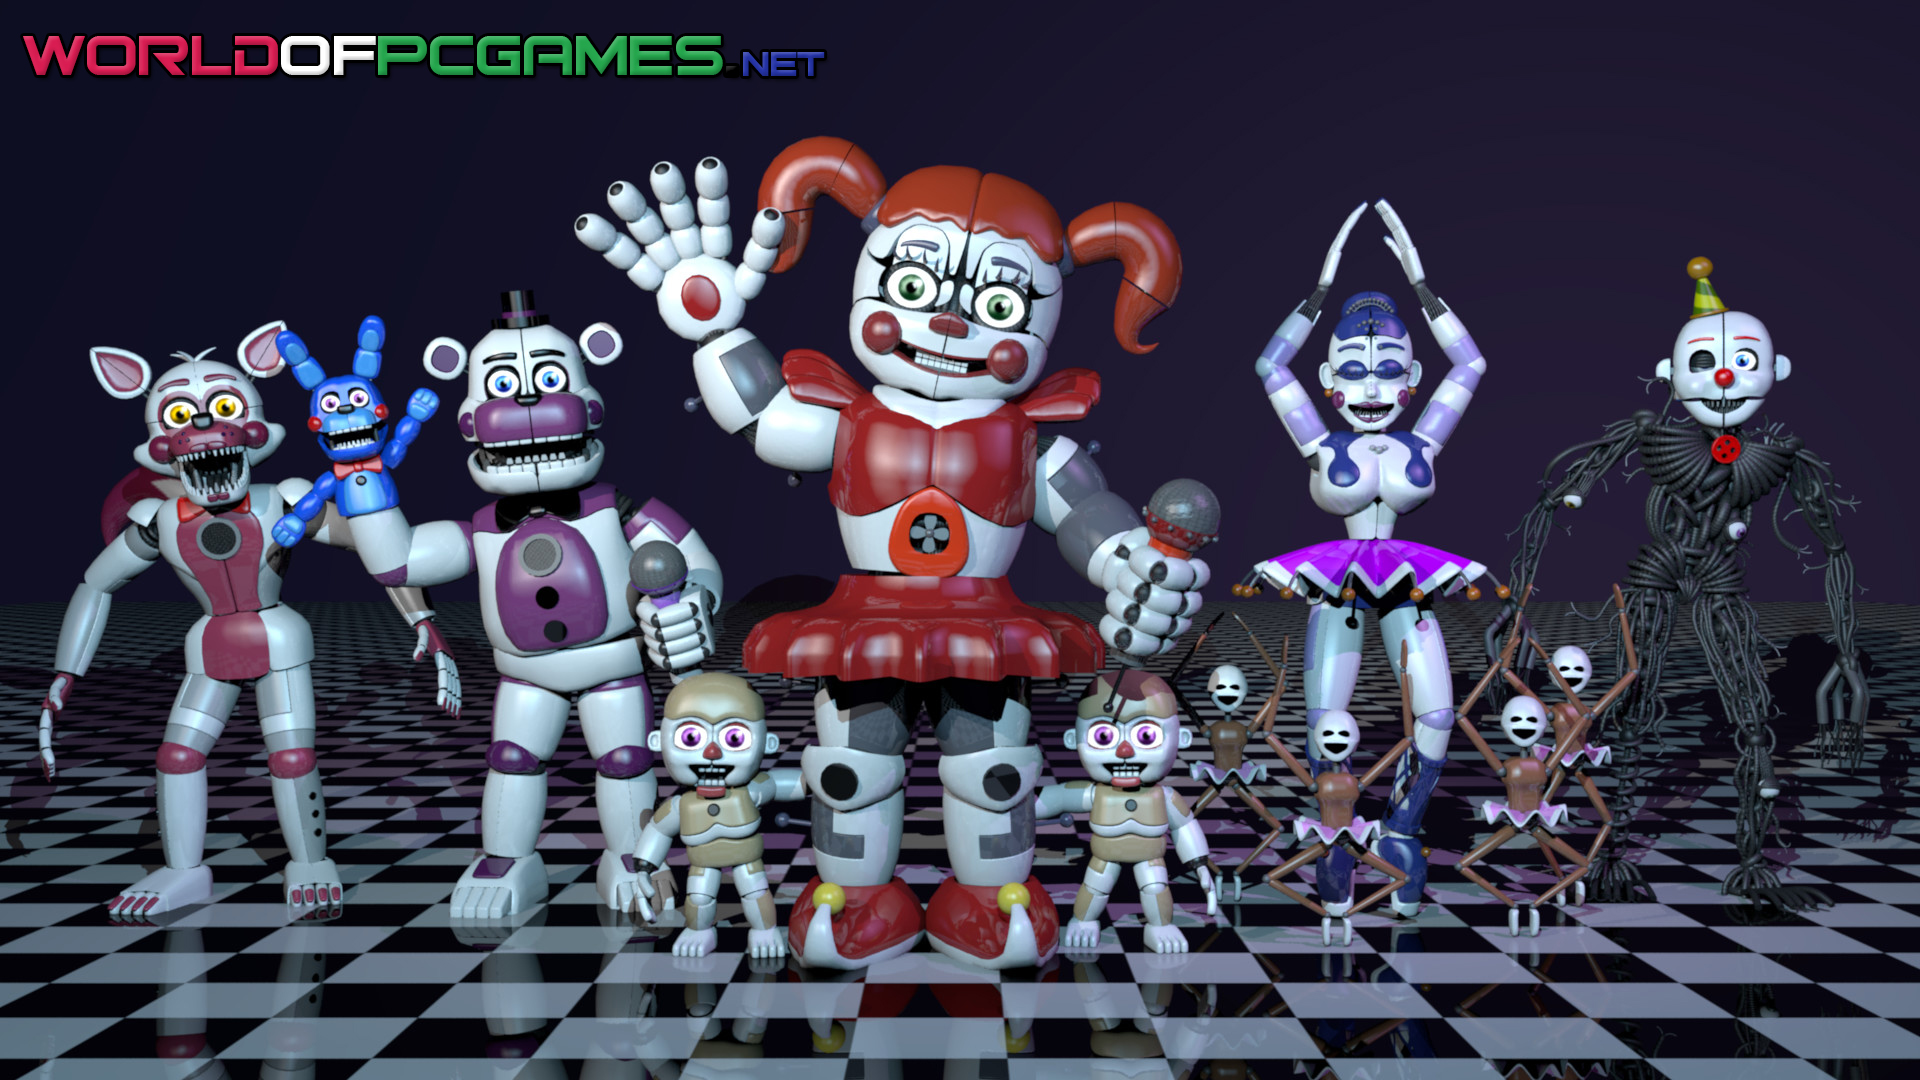 Five Nights At Freddys Sister Location Free Download PC Game By Worldofpcgames